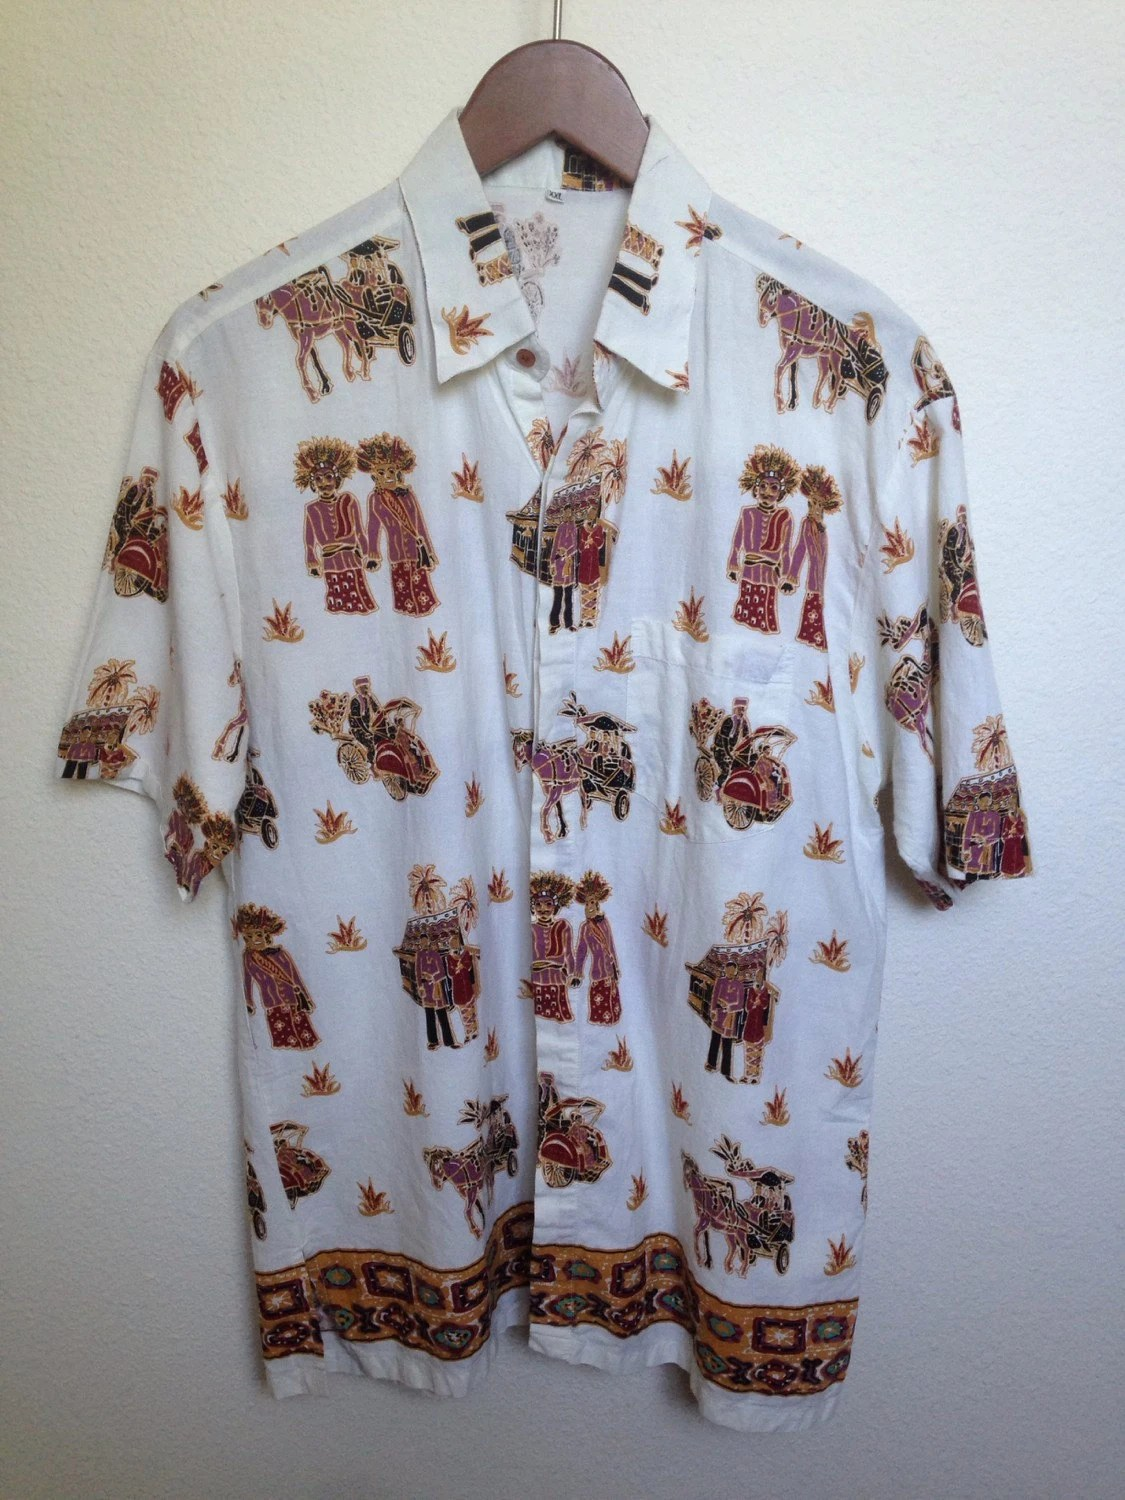 Bettwäsche Batik Vintage Batik Shirt Indonesian Tribal Tempo Doeloe Bicycle Cart Horse Drawn Indonesia Ethnic Wedding Ceremony Palm Trees Tropical Festival